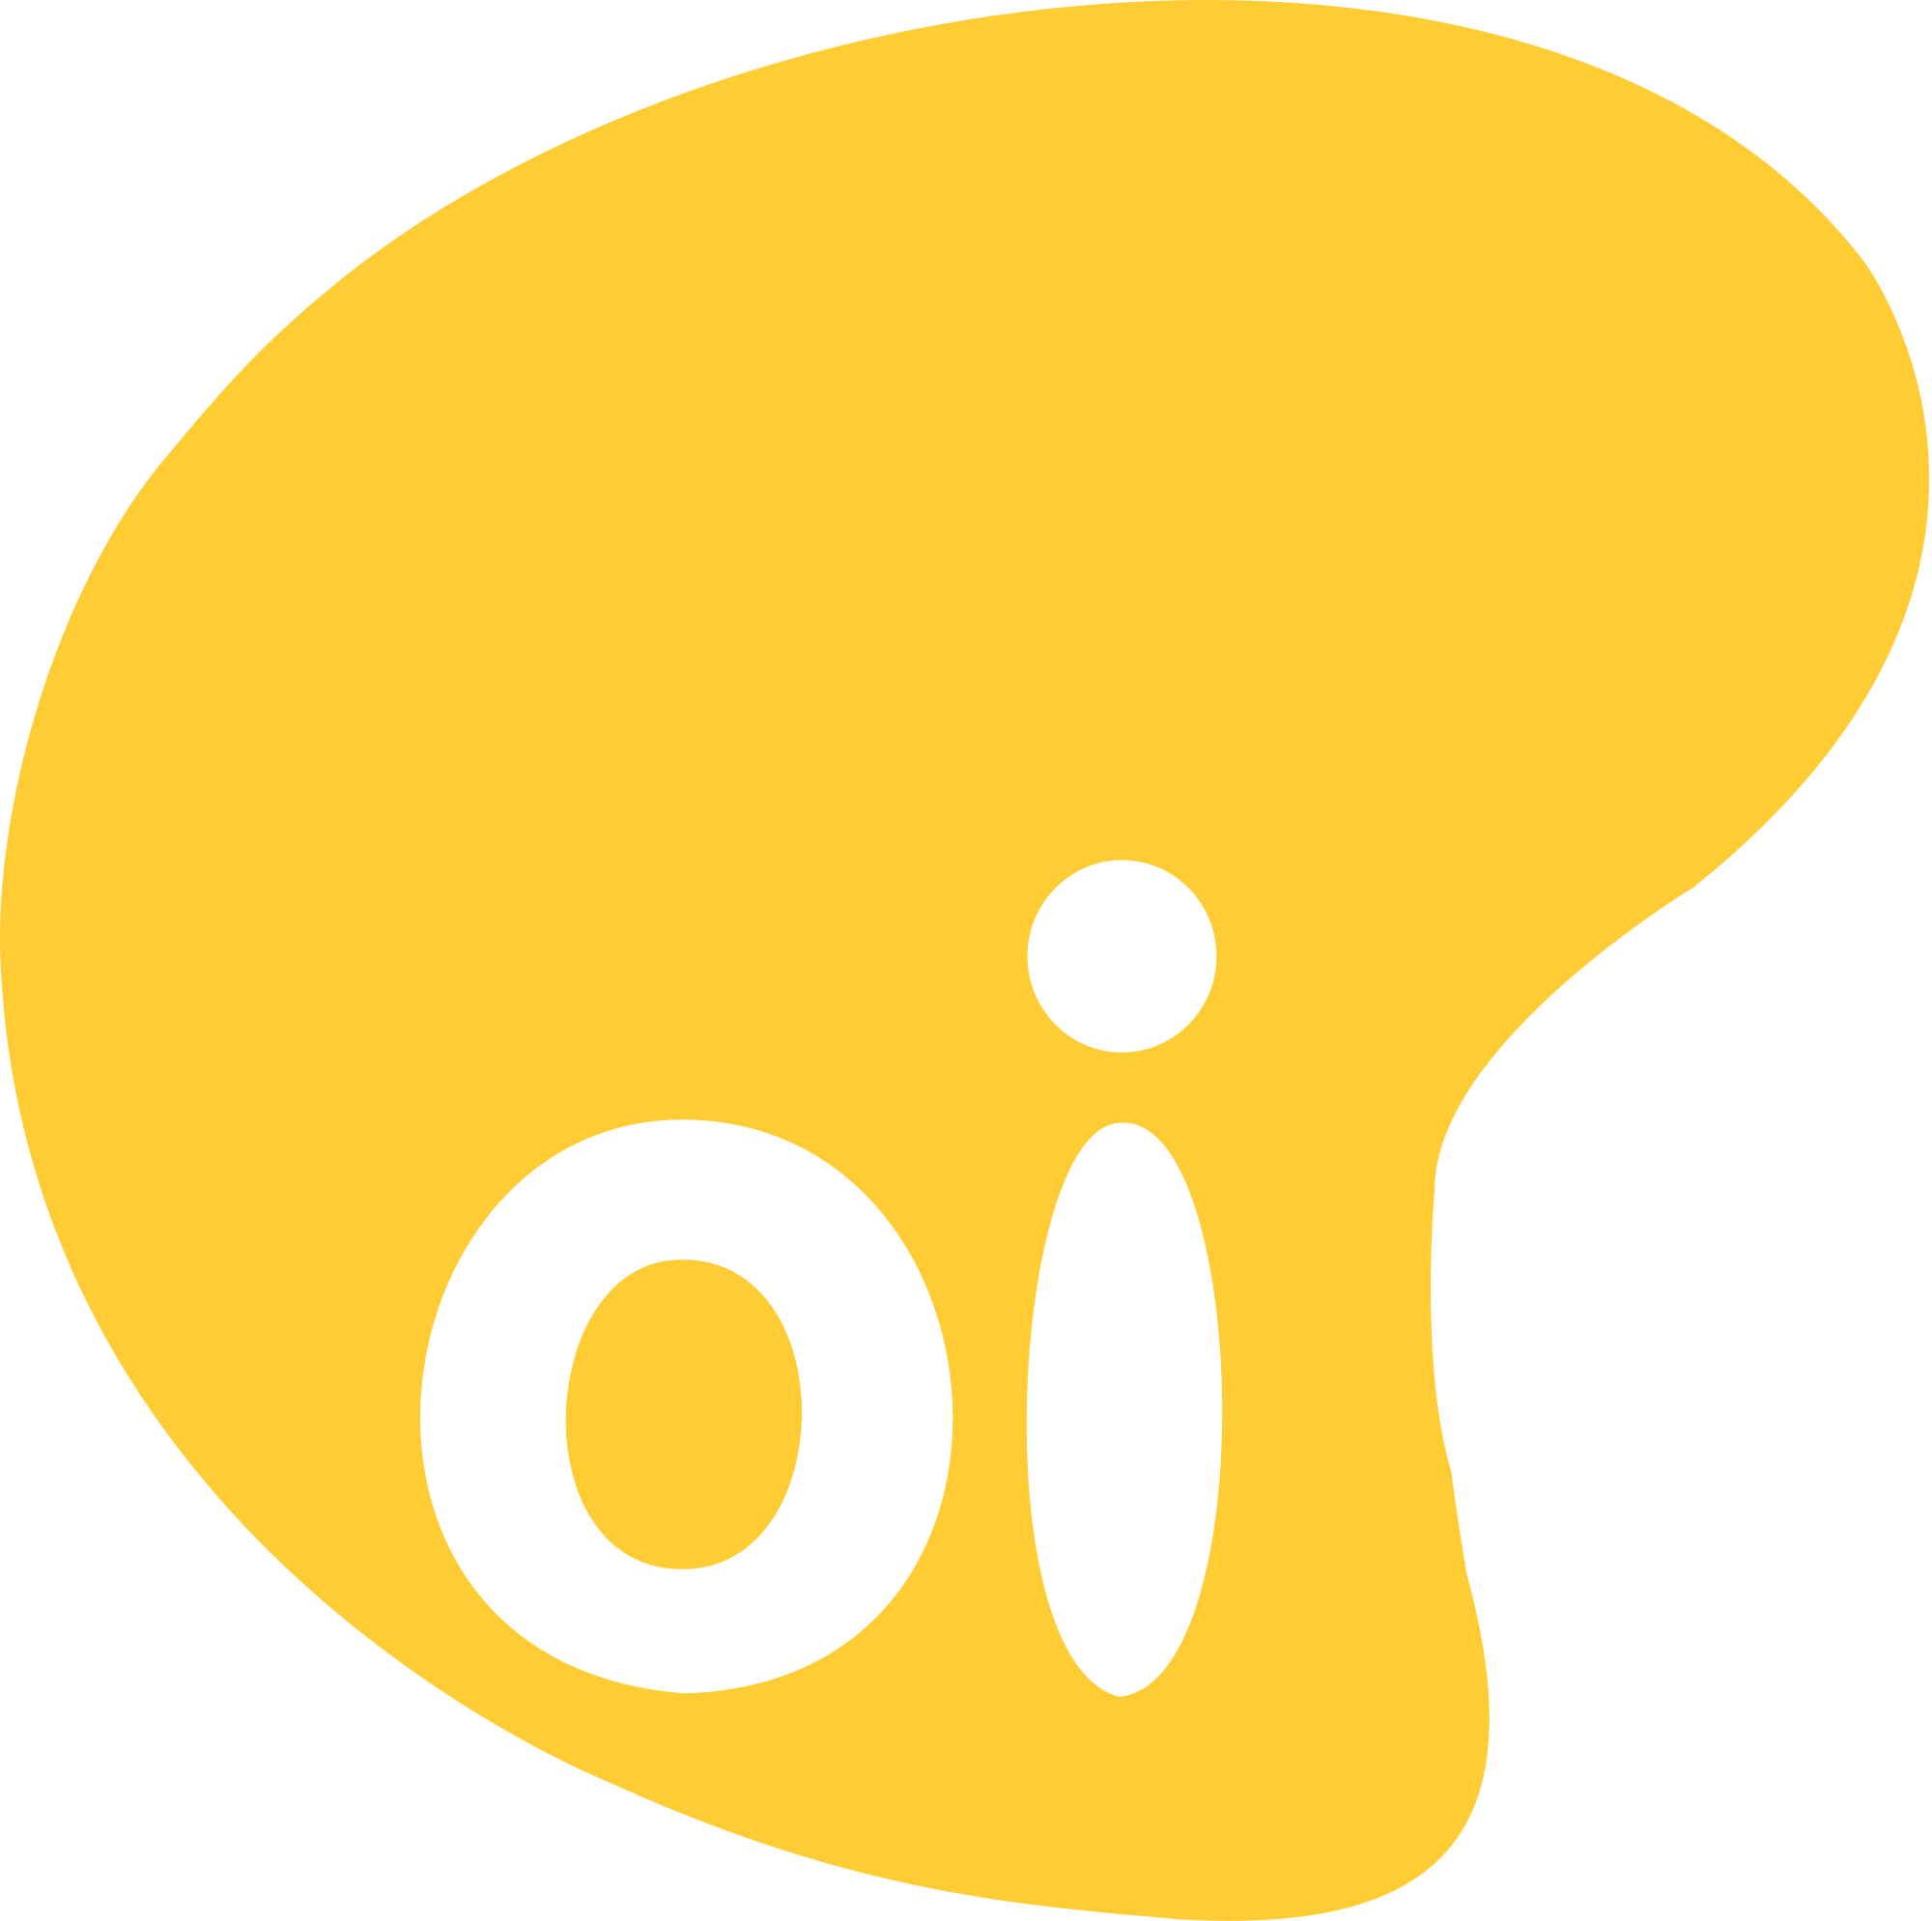 Oi Logo Wallpaper